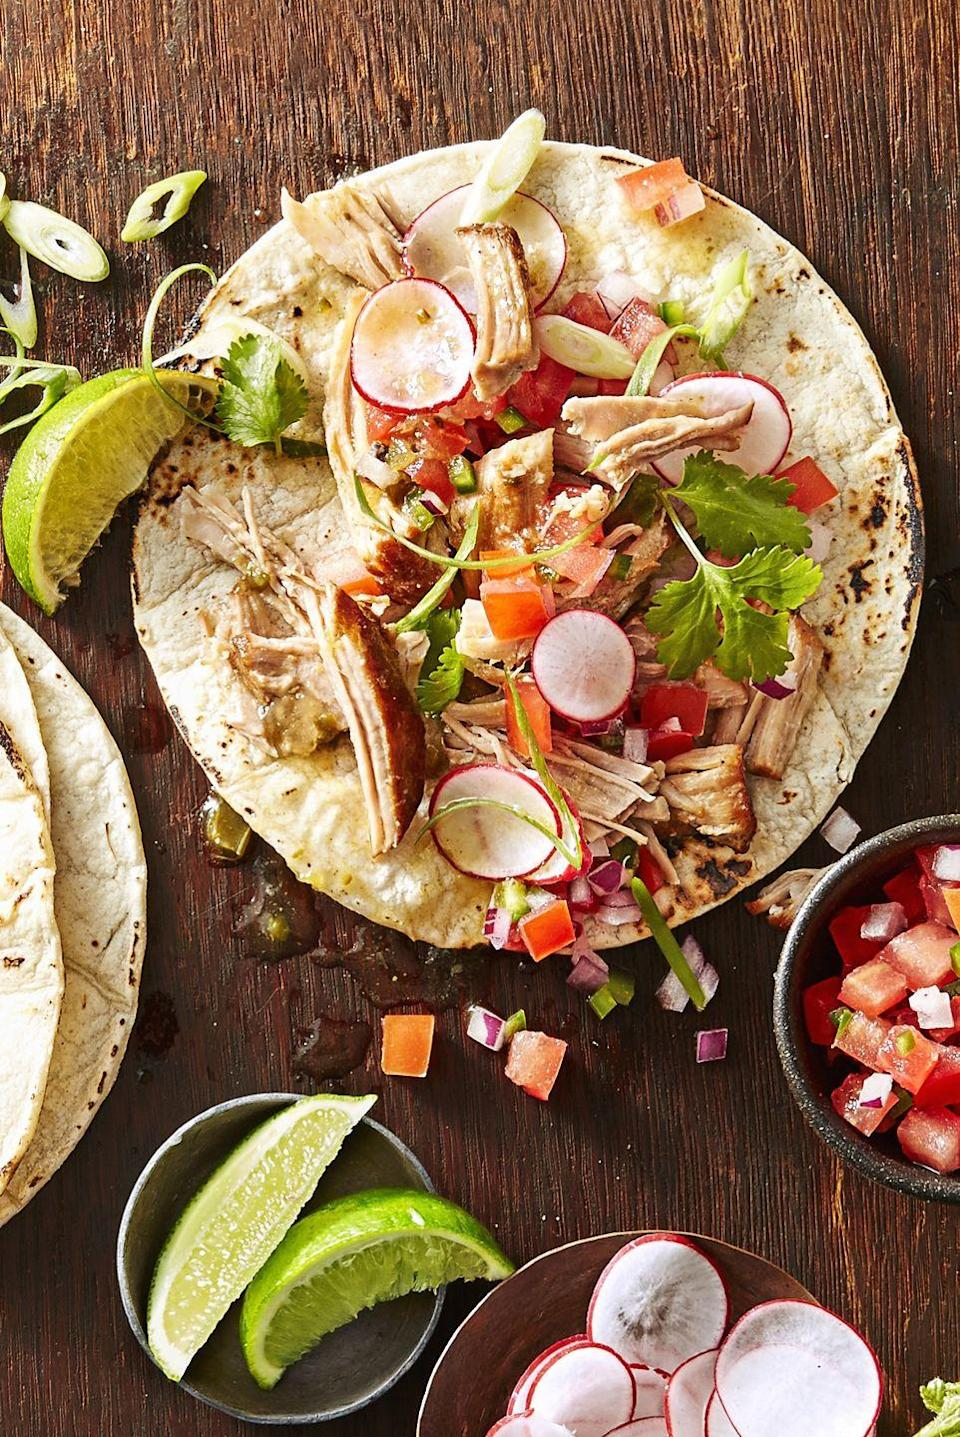 "<p>Let your slow cooker do the heavy work, so you can make a batch of <a href=""https://www.goodhousekeeping.com/food-recipes/cooking/tips/g1975/homemade-lime-margarita/"" rel=""nofollow noopener"" target=""_blank"" data-ylk=""slk:margaritas"" class=""link rapid-noclick-resp"">margaritas</a> for everyone.</p><p><a href=""https://www.goodhousekeeping.com/food-recipes/a42403/carnitas-tacos-recipe/"" rel=""nofollow noopener"" target=""_blank"" data-ylk=""slk:Get the recipe for Carnitas Tacos »"" class=""link rapid-noclick-resp""><em>Get the recipe for Carnitas Tacos »</em></a></p>"